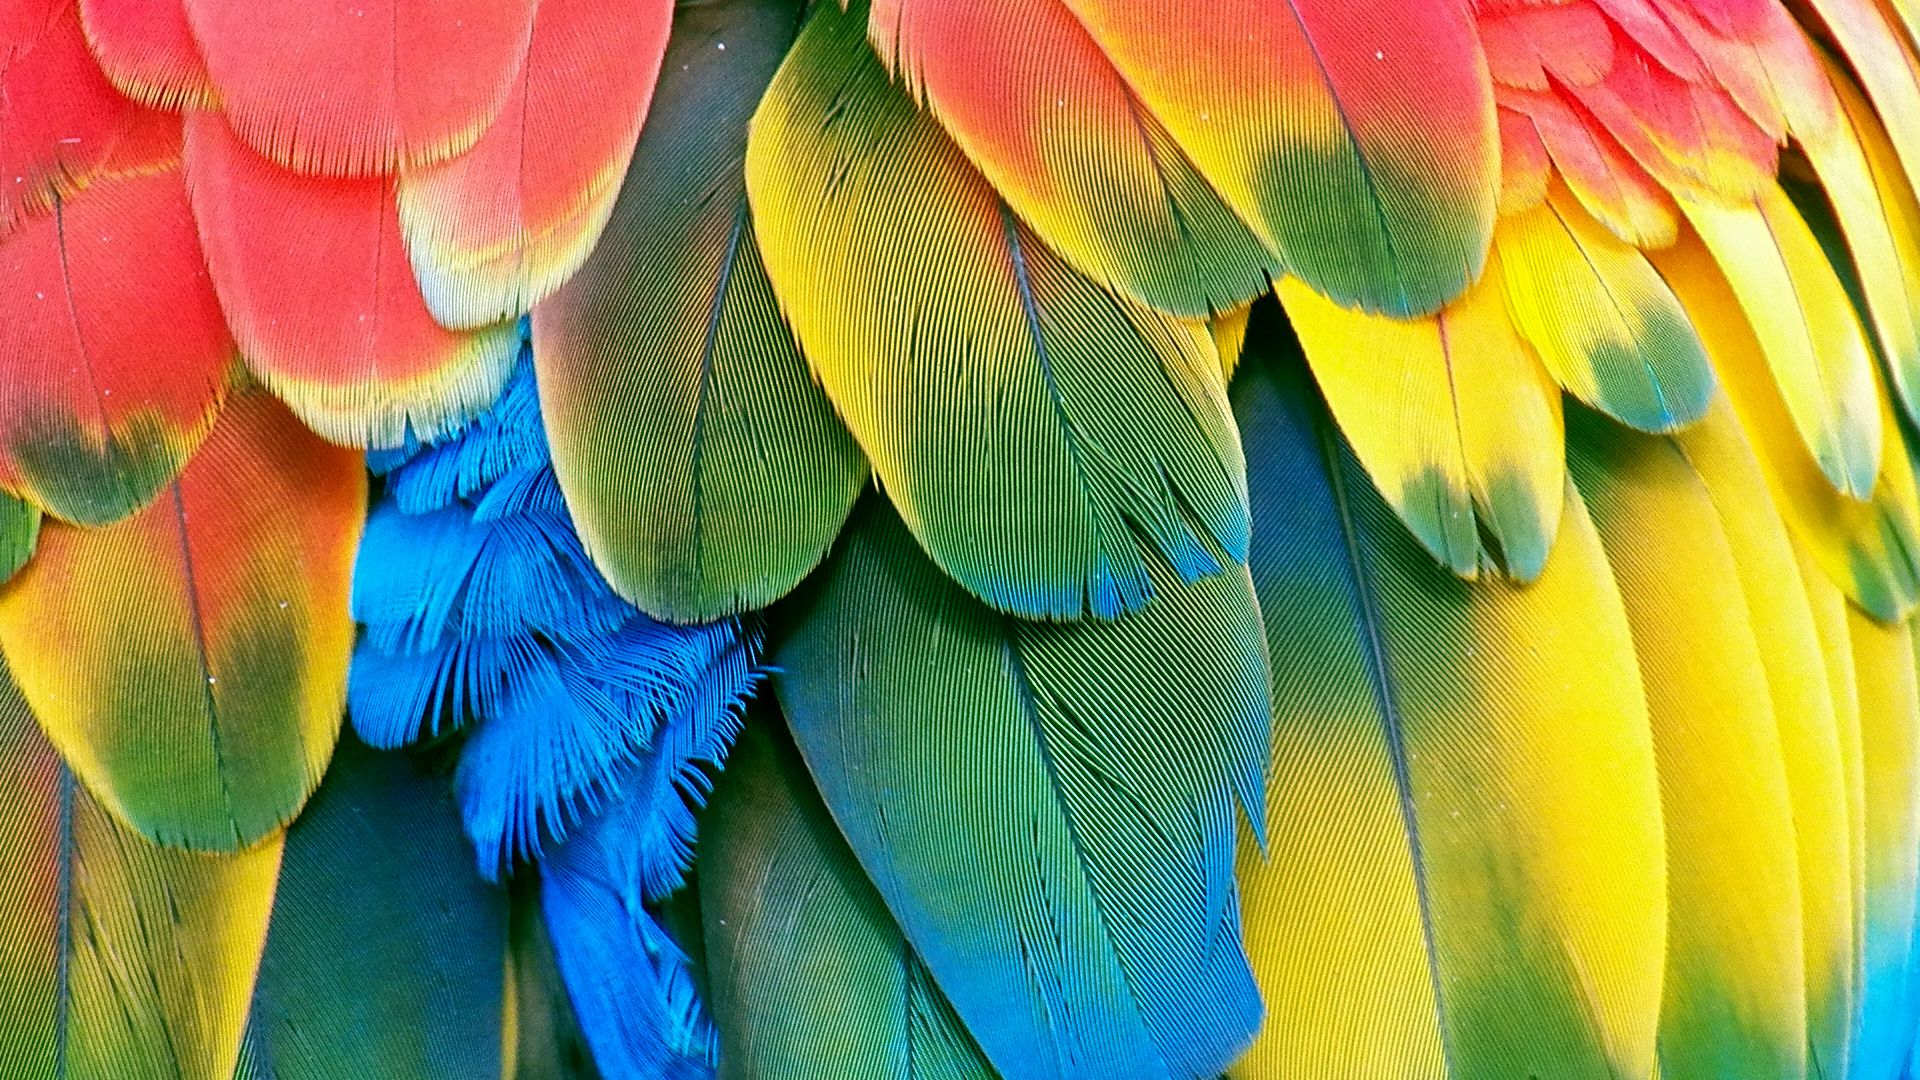 hd parrot wallpapers